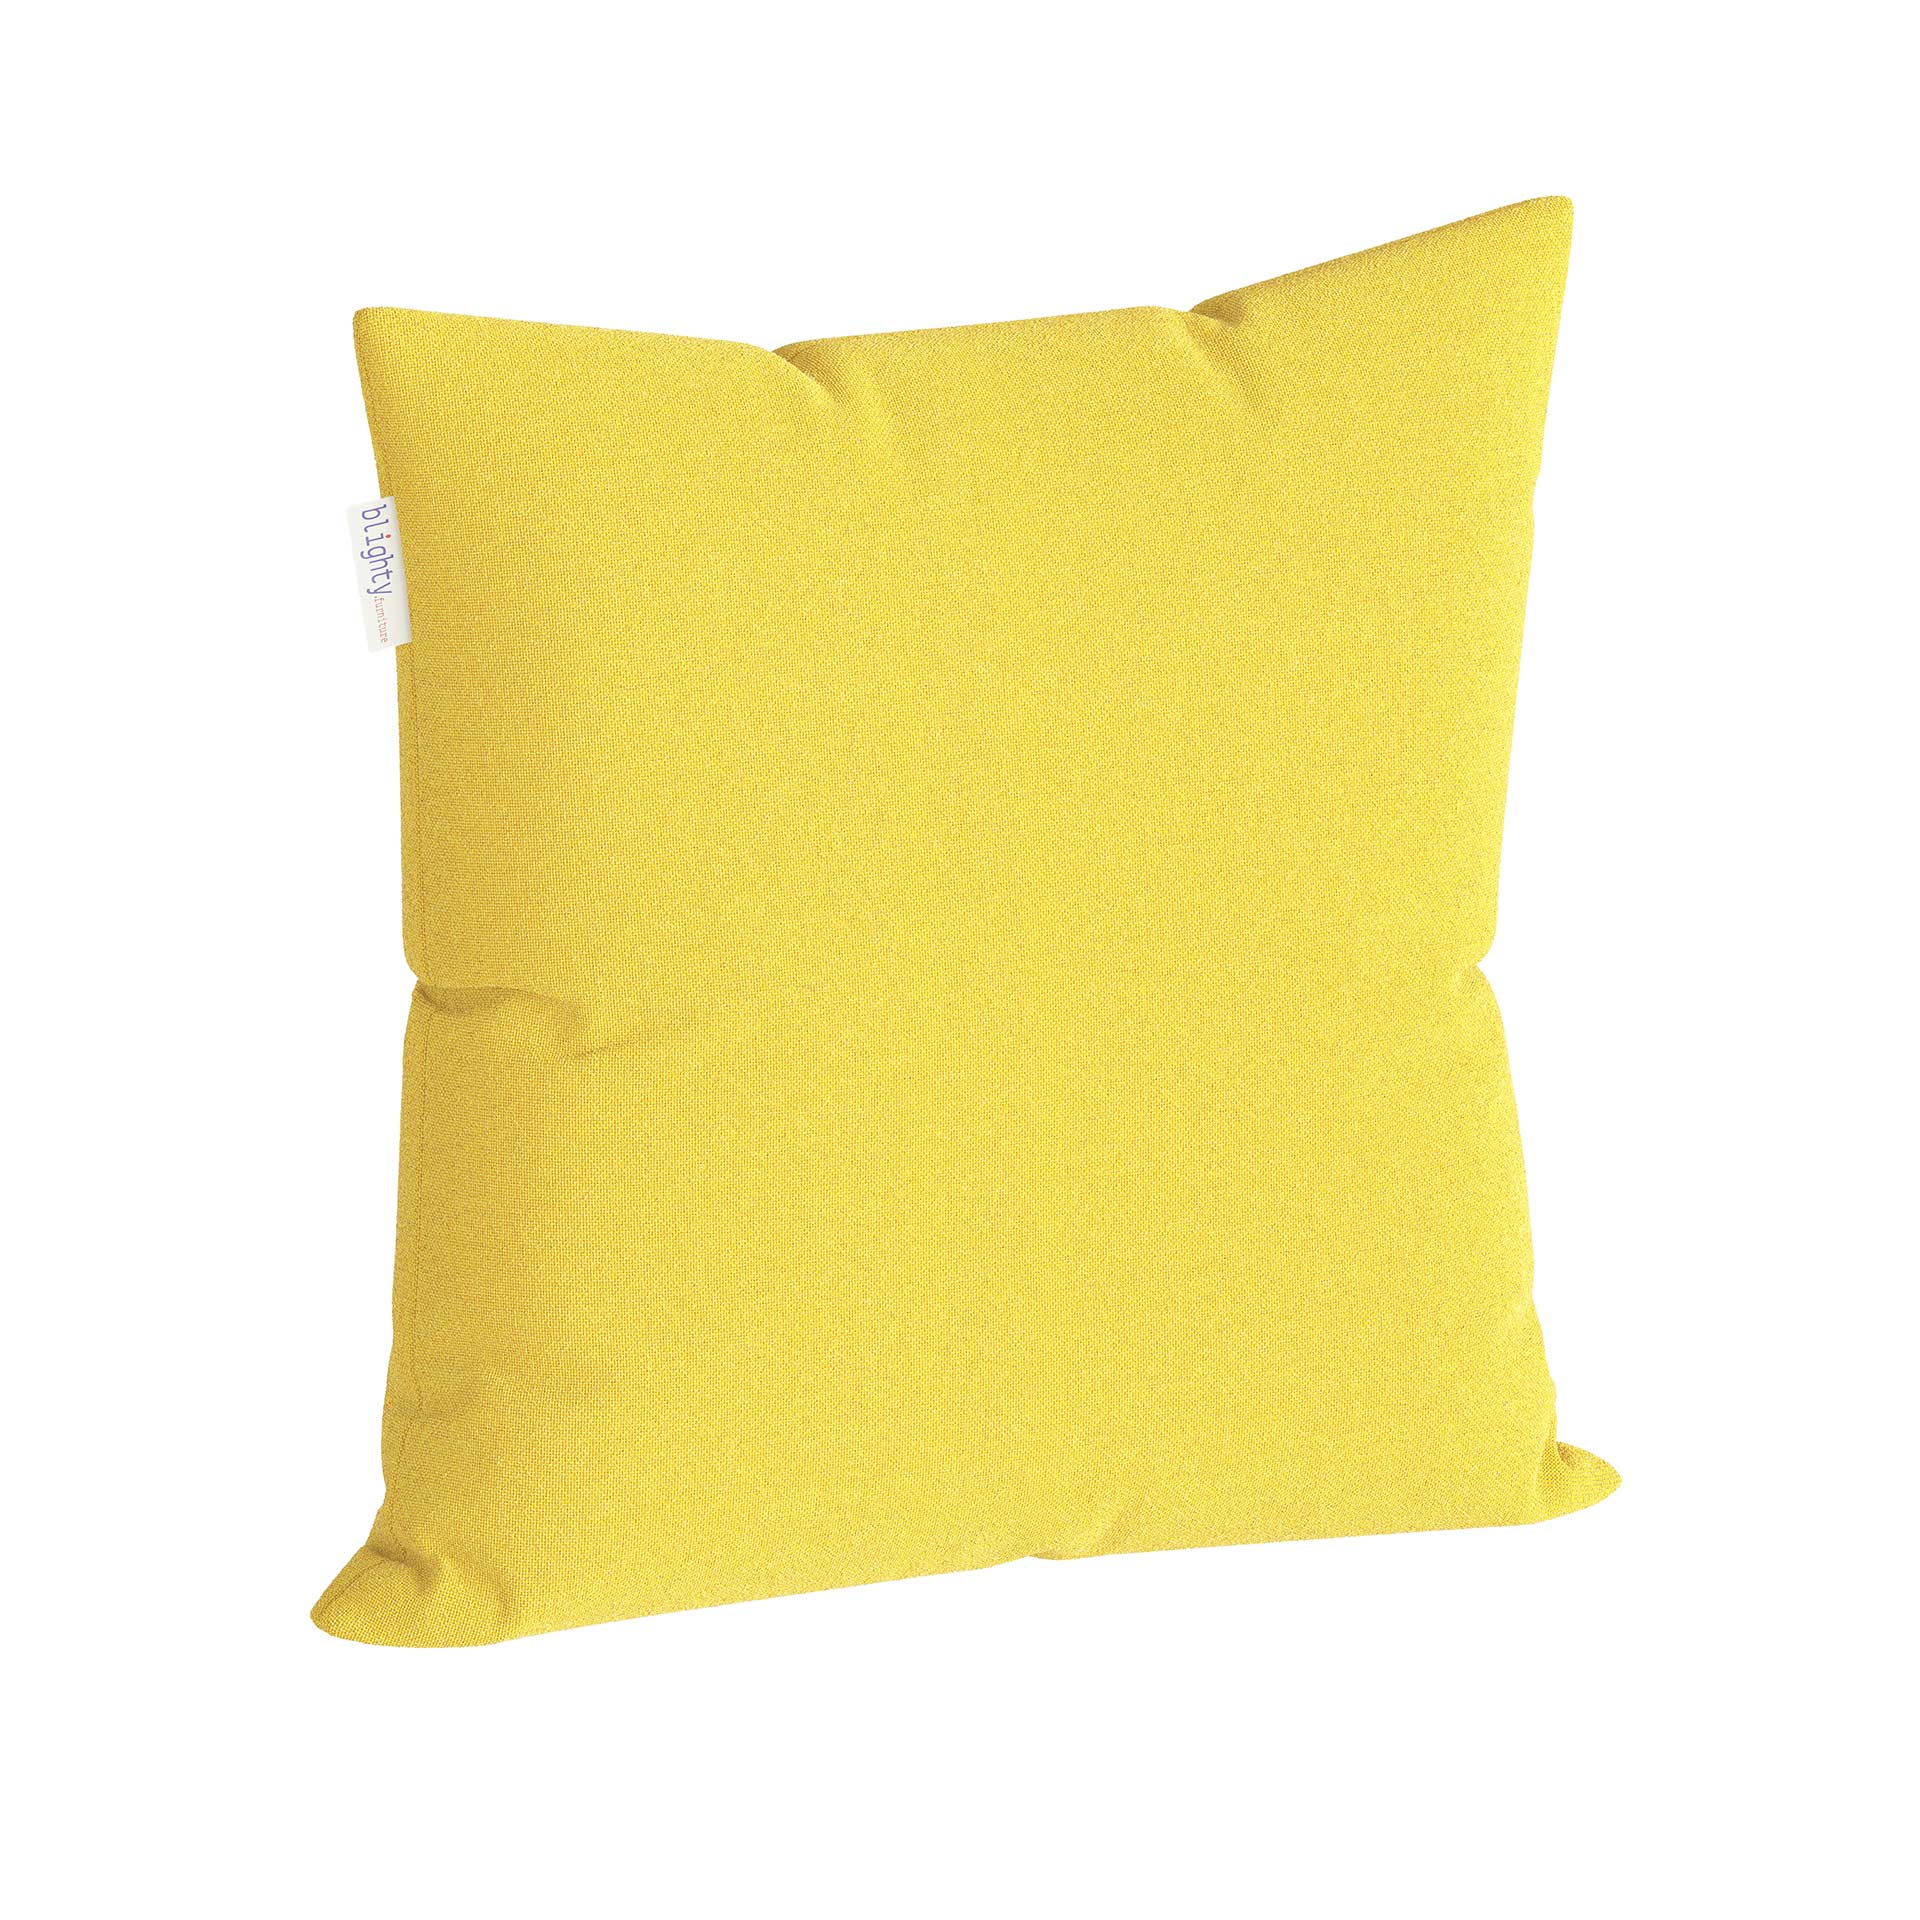 Scatter Square Pillow Corner View Yellow